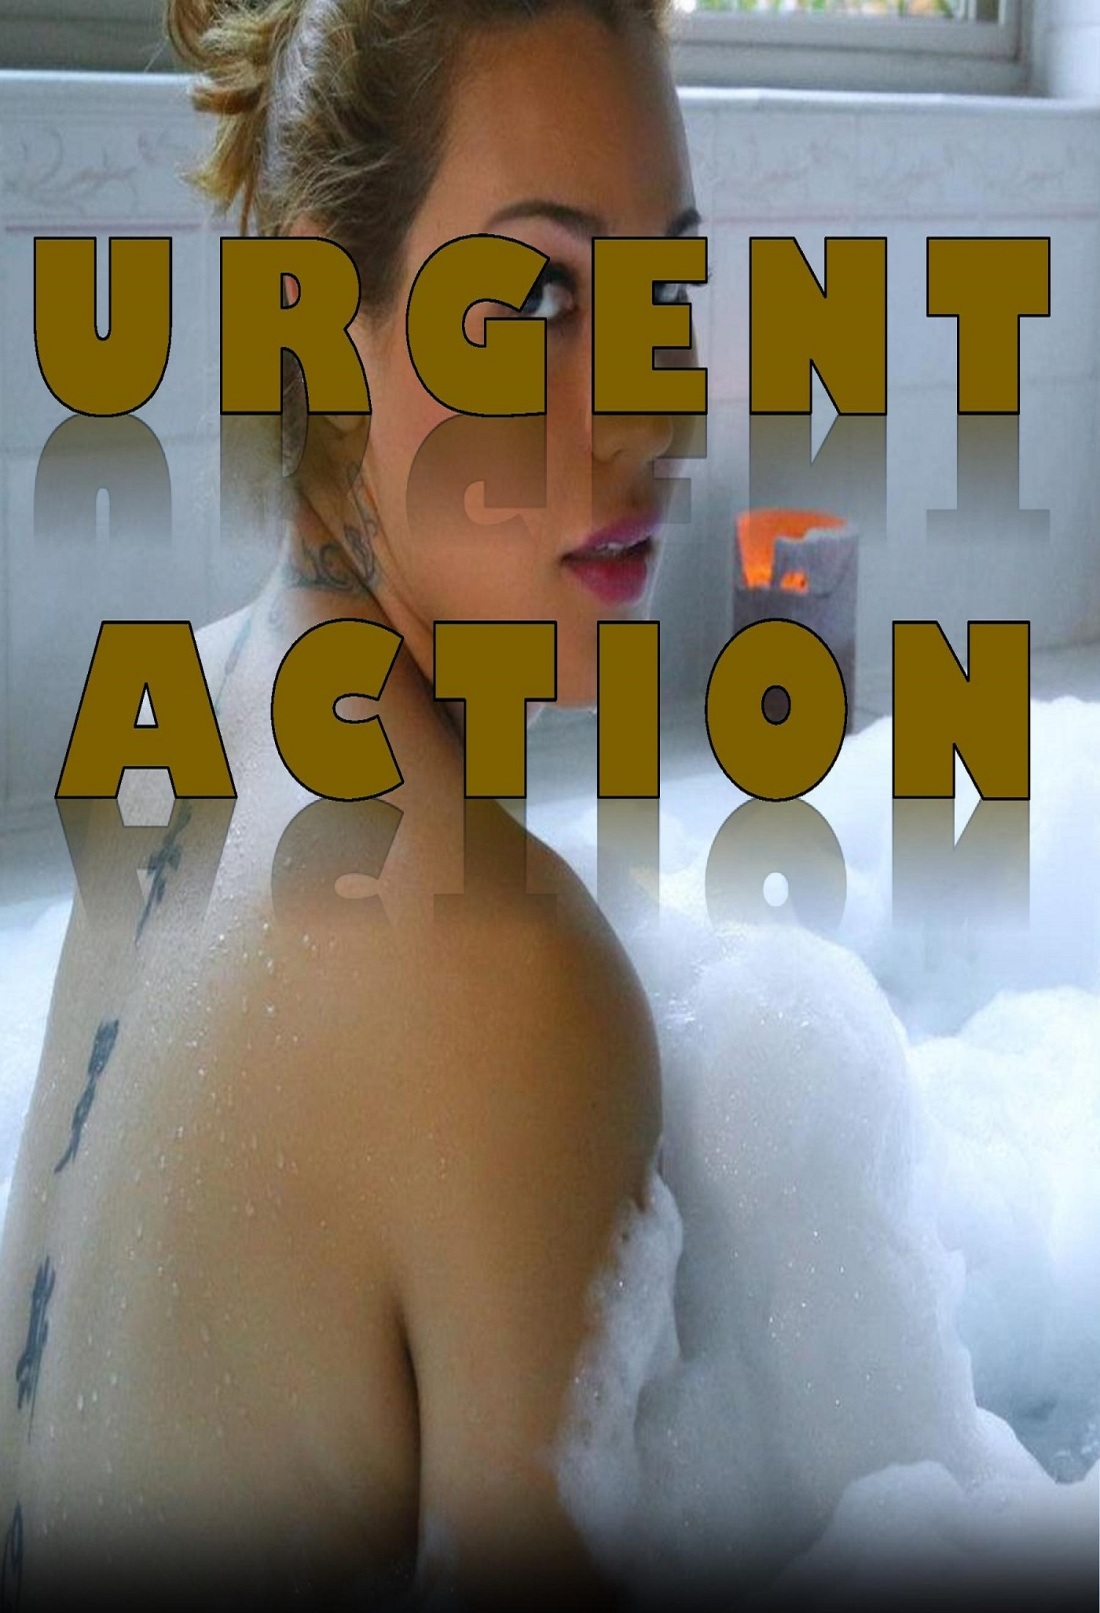 URGENT ACTION COVER-FREE OFFER